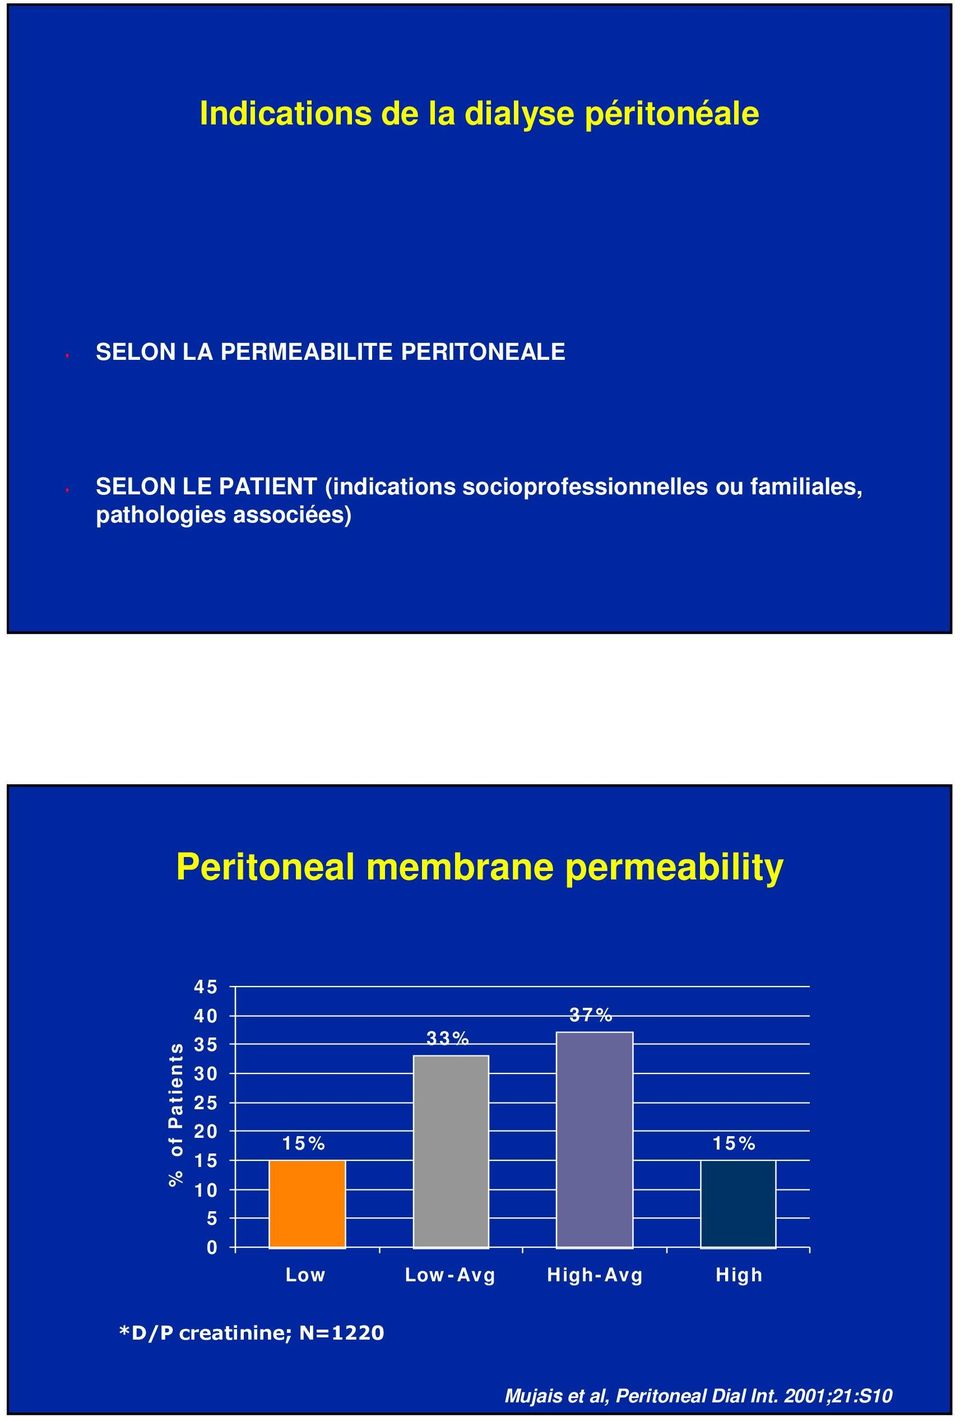 permeability % of Patient s 4 5 4 0 3 5 3 0 2 5 2 0 1 5 1 0 5 0 3 7 % 3 3 % 1 5 % 1 5 % Low